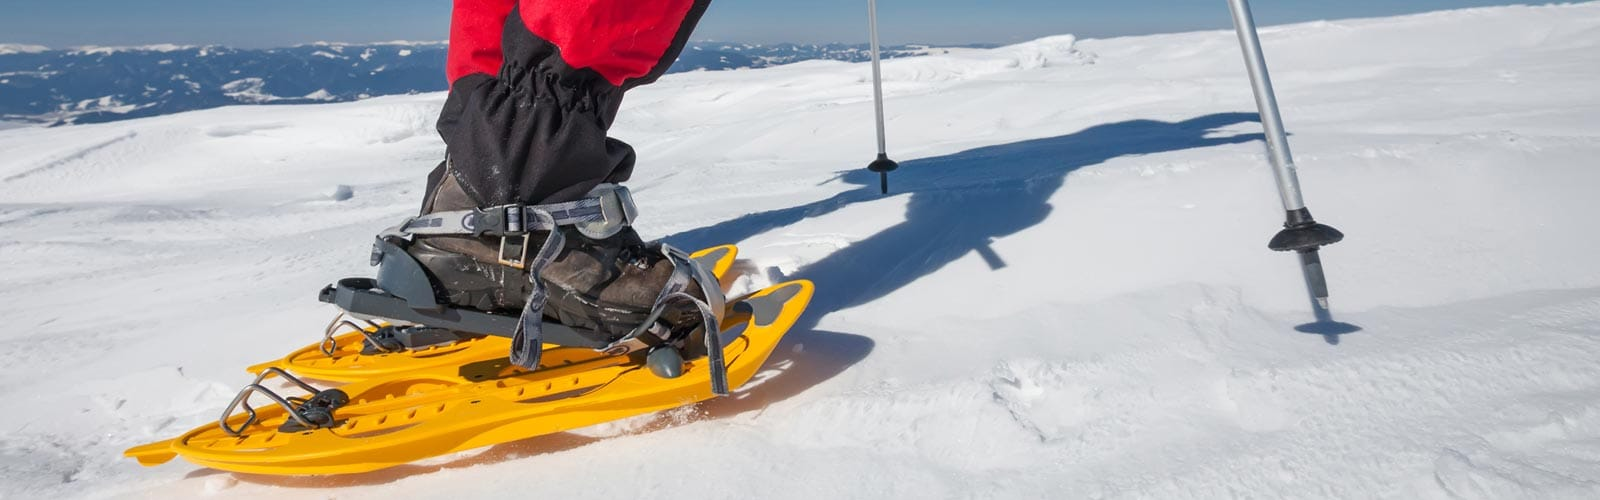 The Snowshoes Guide: Sierra Trading Post